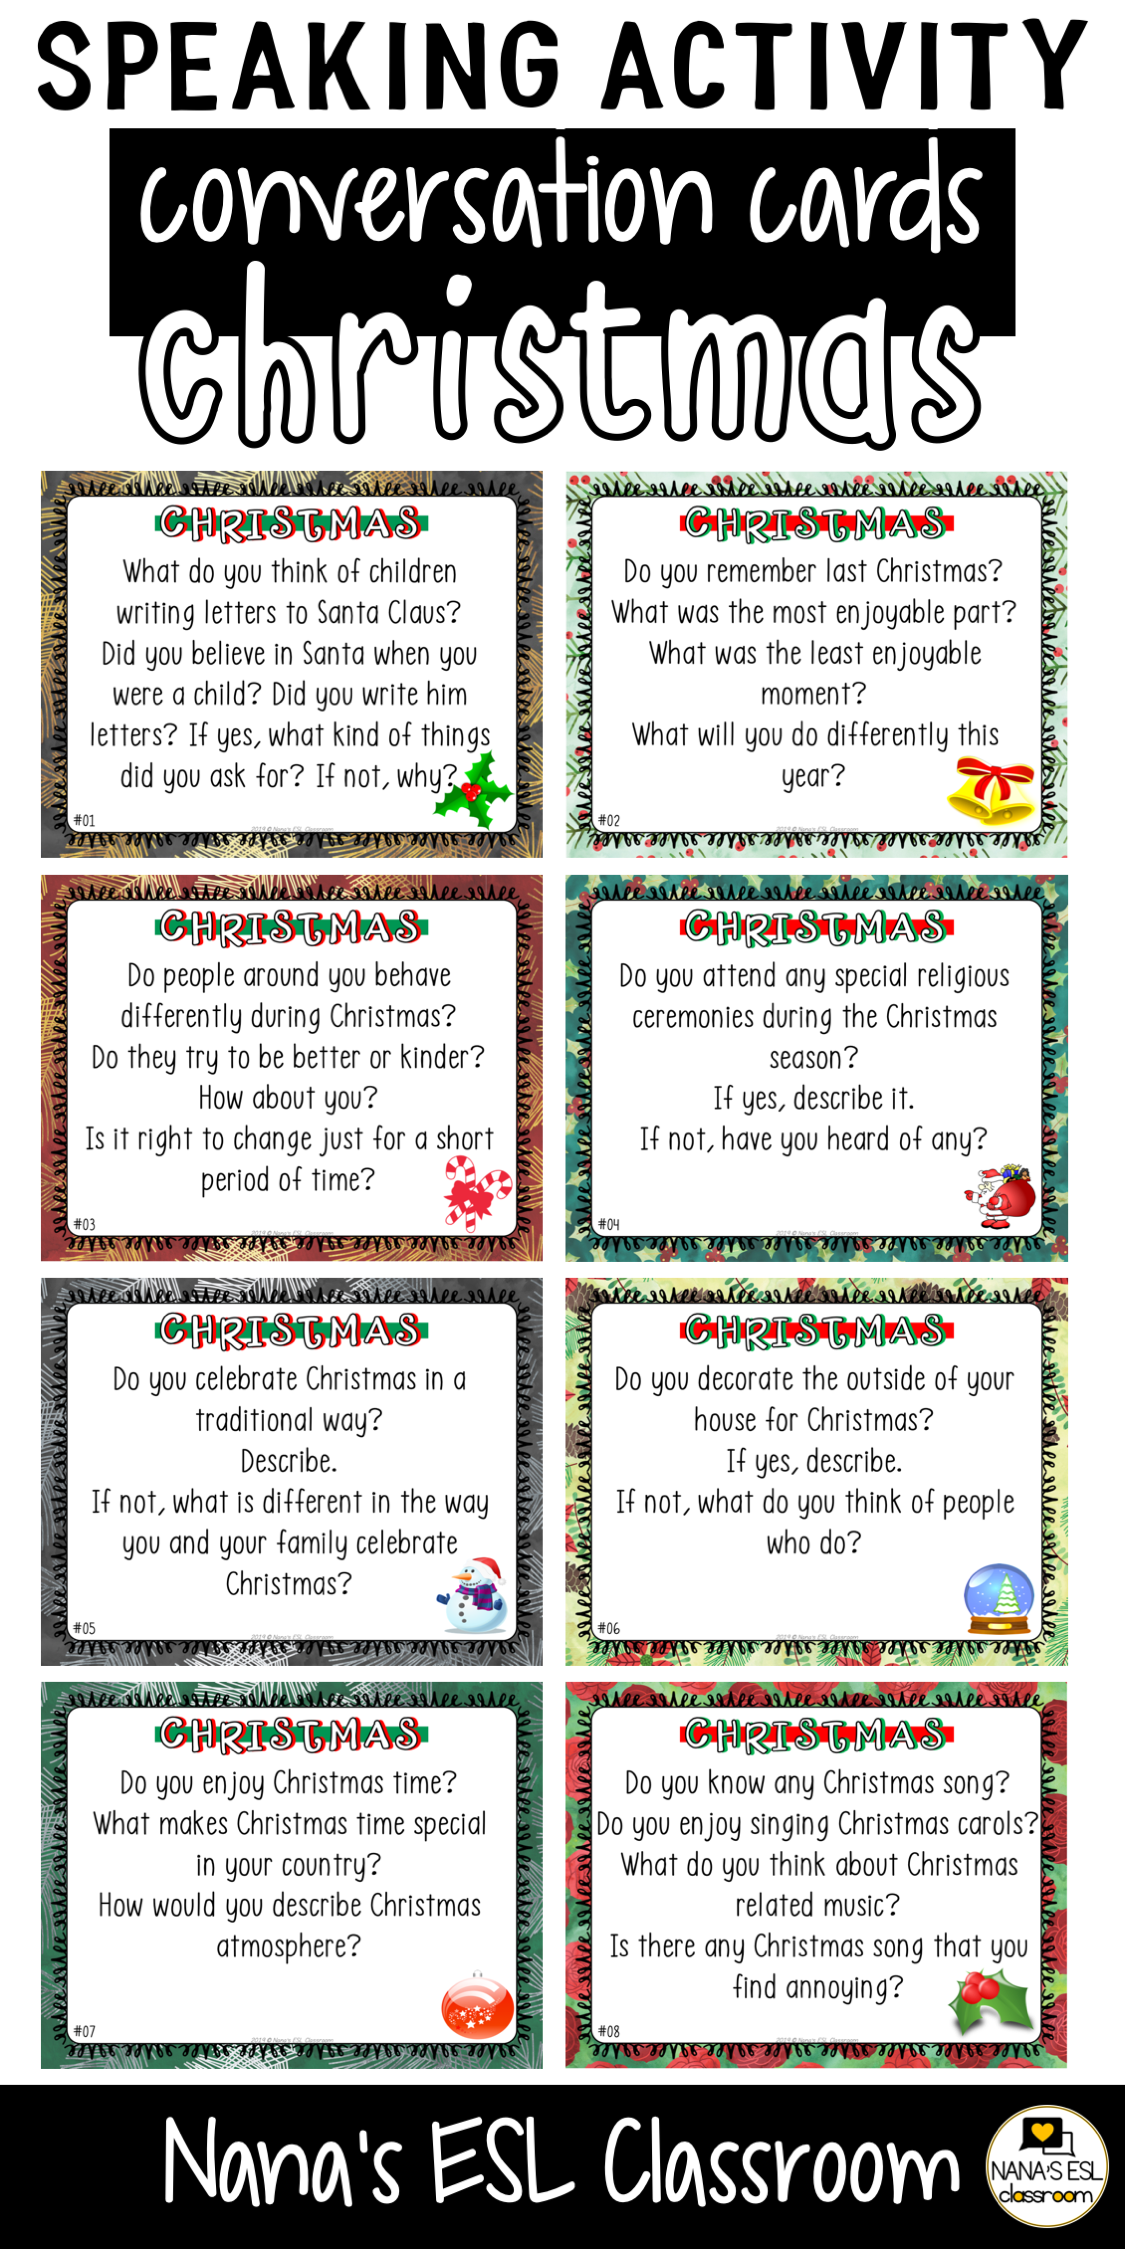 Conversation Starter Cards Christmas Holidays Speaking Skills Practice For English Conversation For Kids Speaking Activities Speaking Activities English